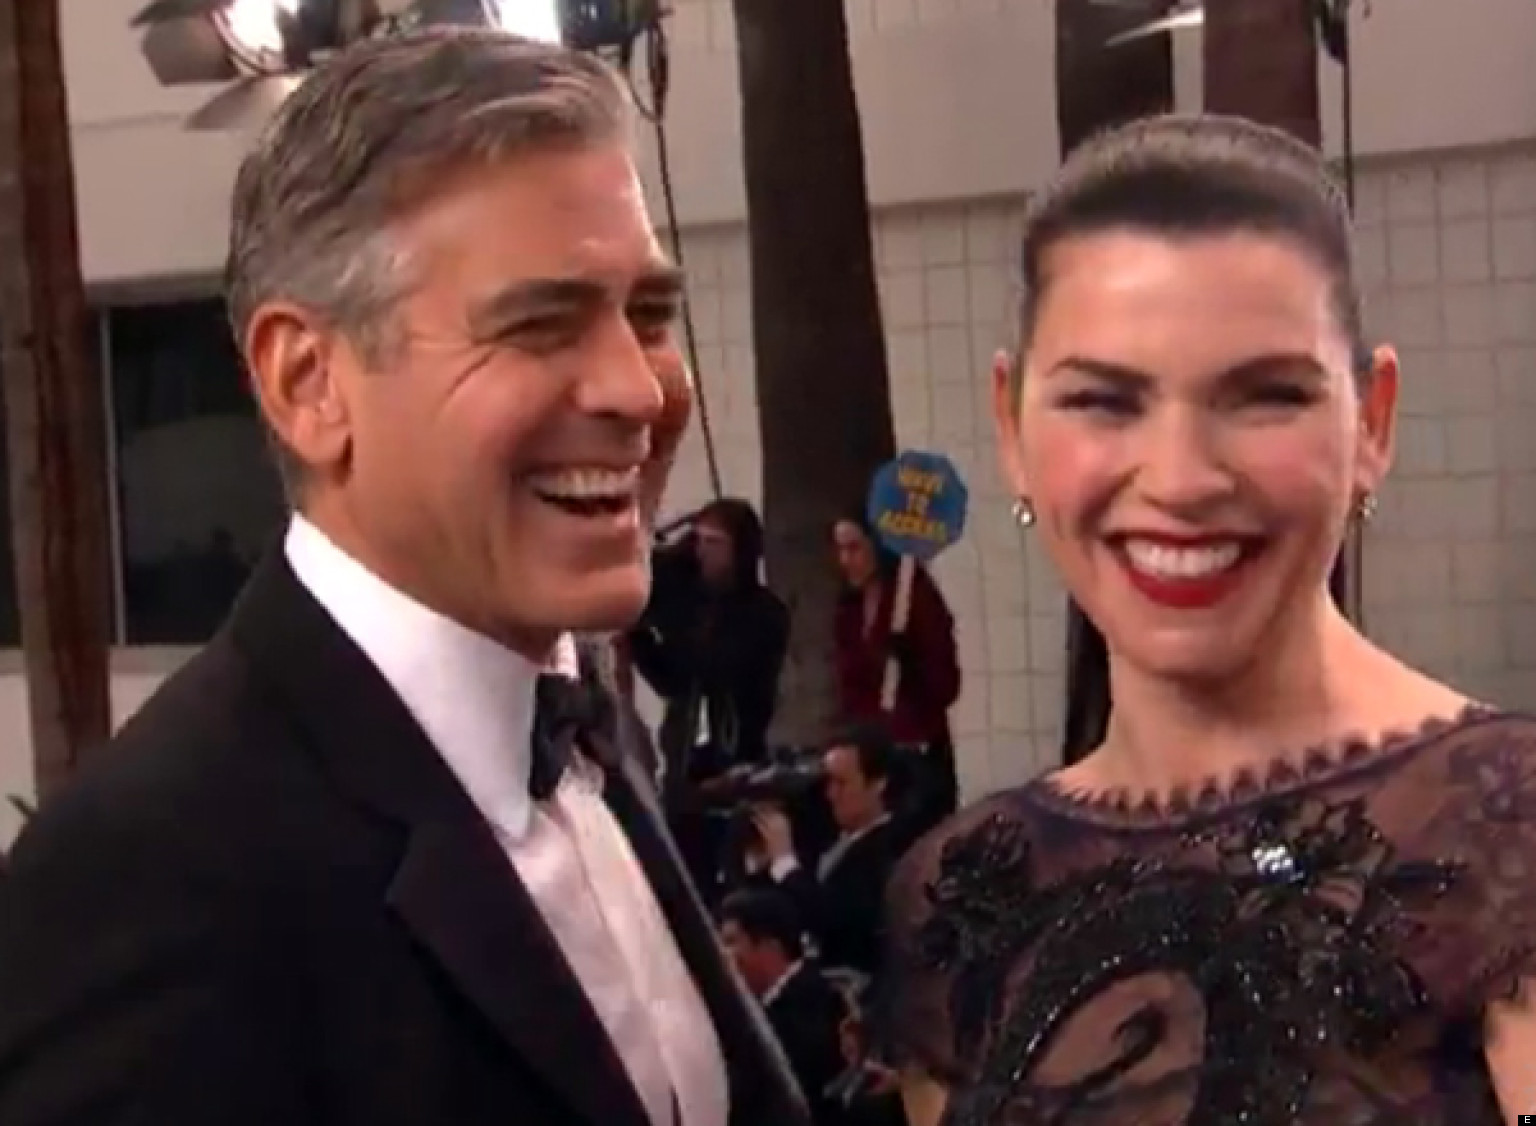 George clooney on the good wife julianna margulies says it d be fun